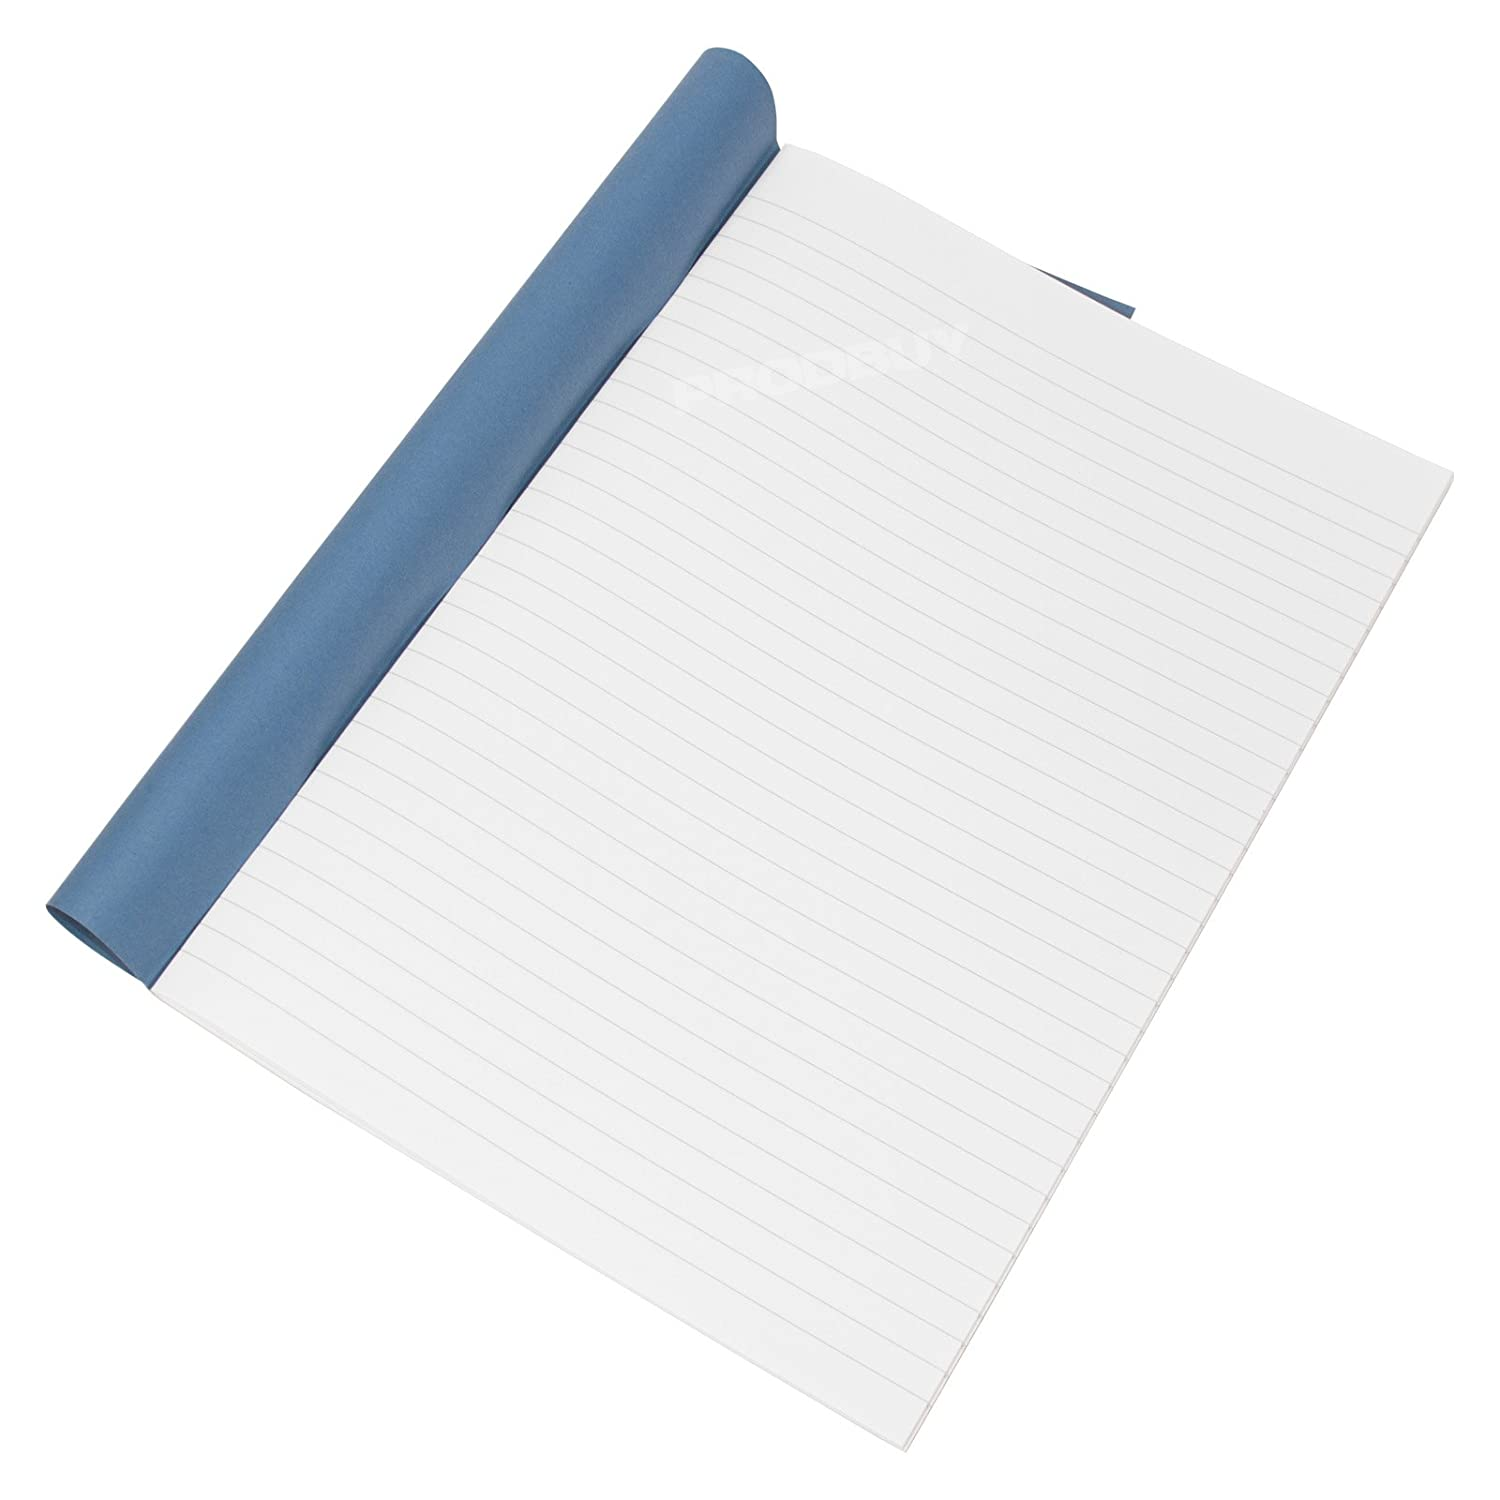 A4 Ruled Pages Hardback Book Lined White Paper Office School Project Notebook